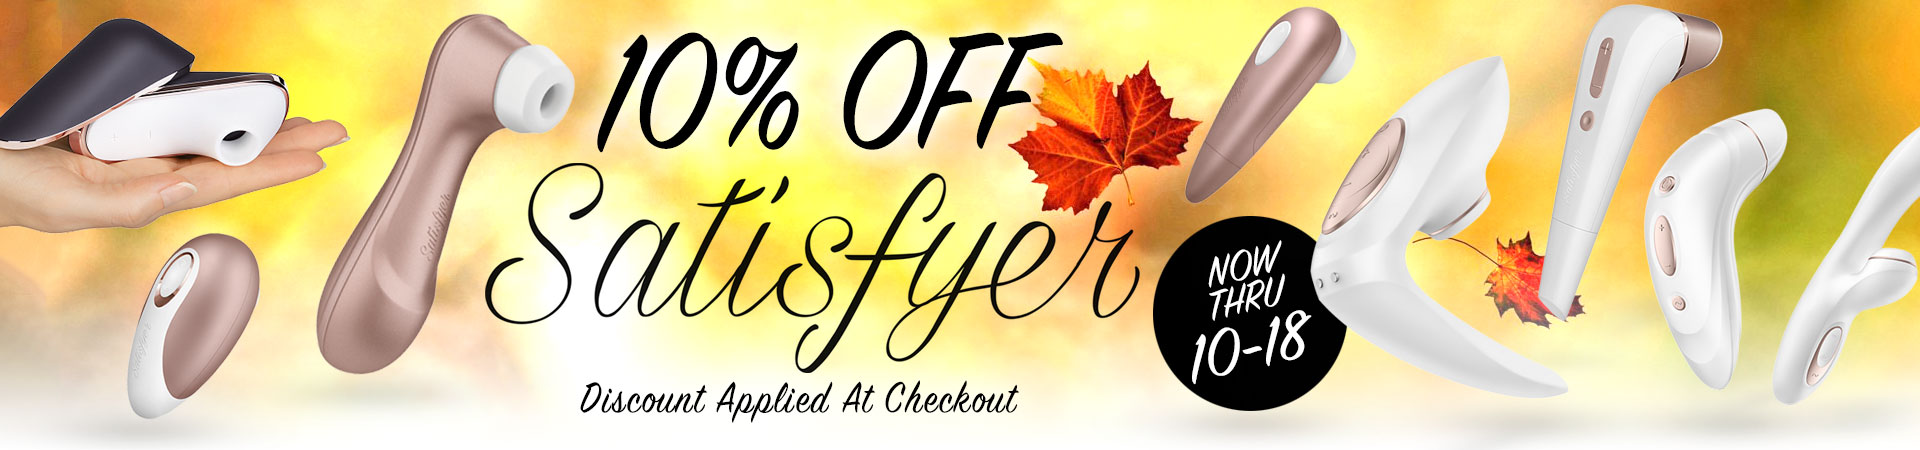 10% off Satisfyer - Now Thru 10/18 - Discount Applied At Checkout